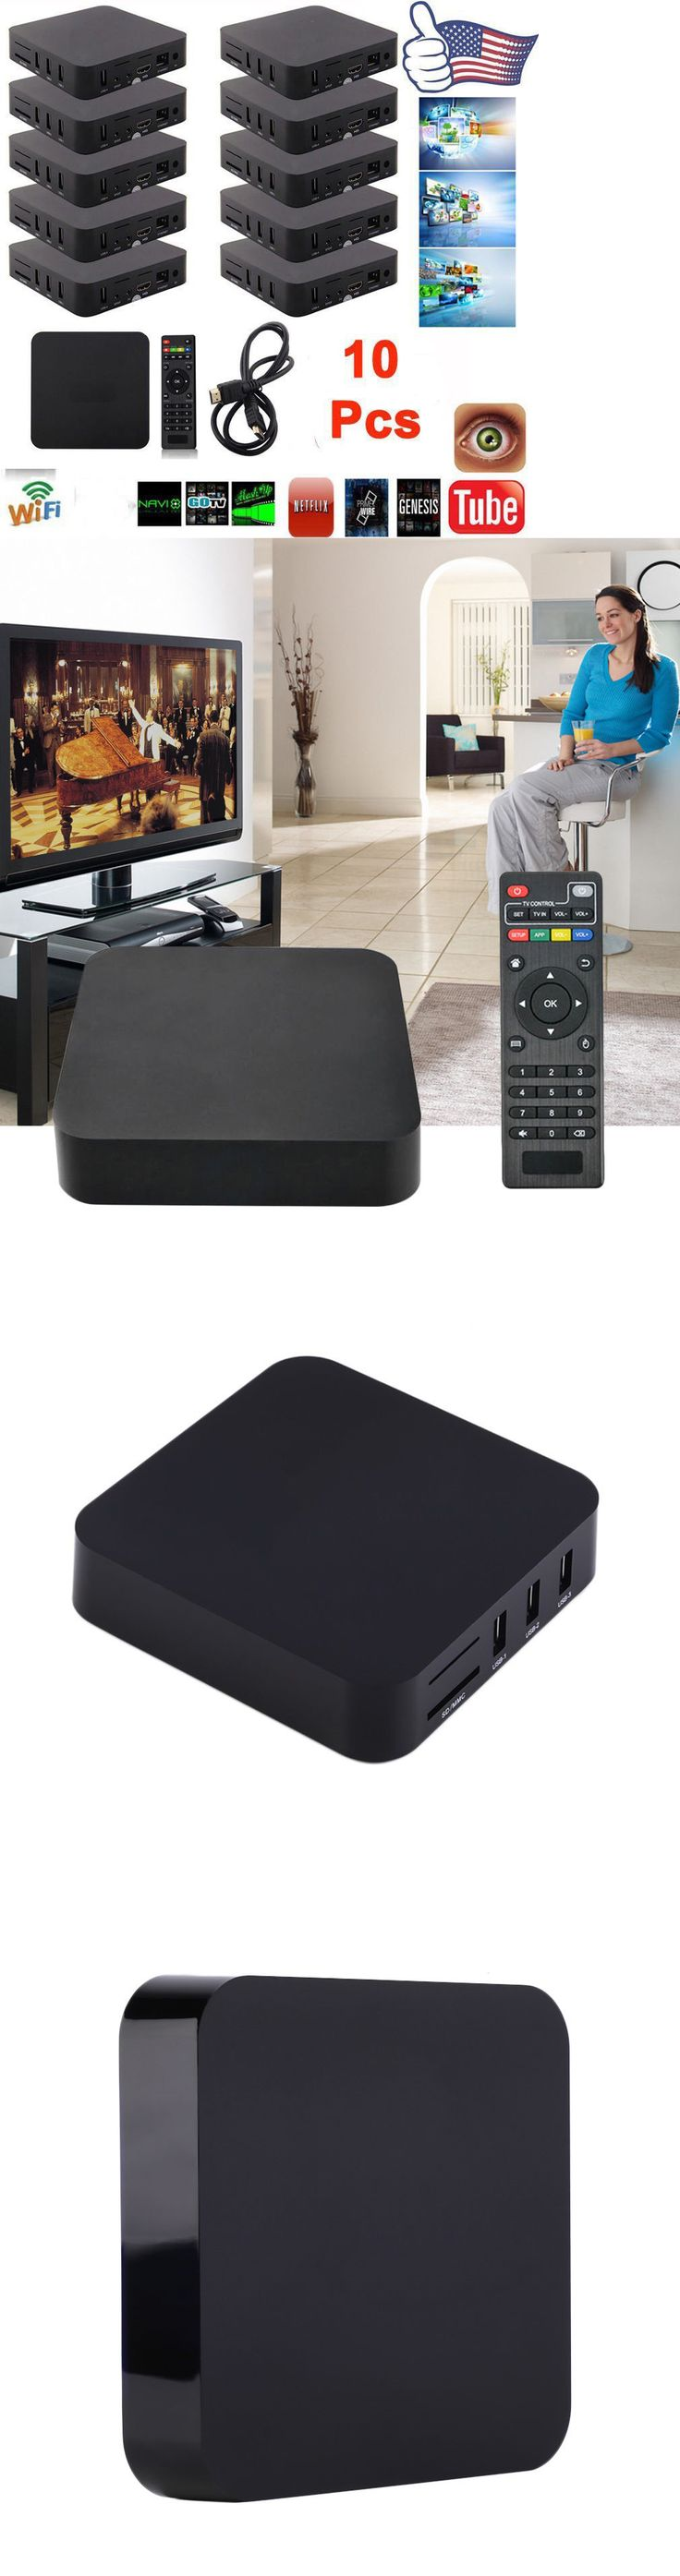 Internet and Media Streamers: Lot 10 Mxq Amlogic S805 Android 4.4 Quad-Core Wifi1080 Smart Set Tv Box 1+8Gb Mg -> BUY IT NOW ONLY: $233.95 on eBay!